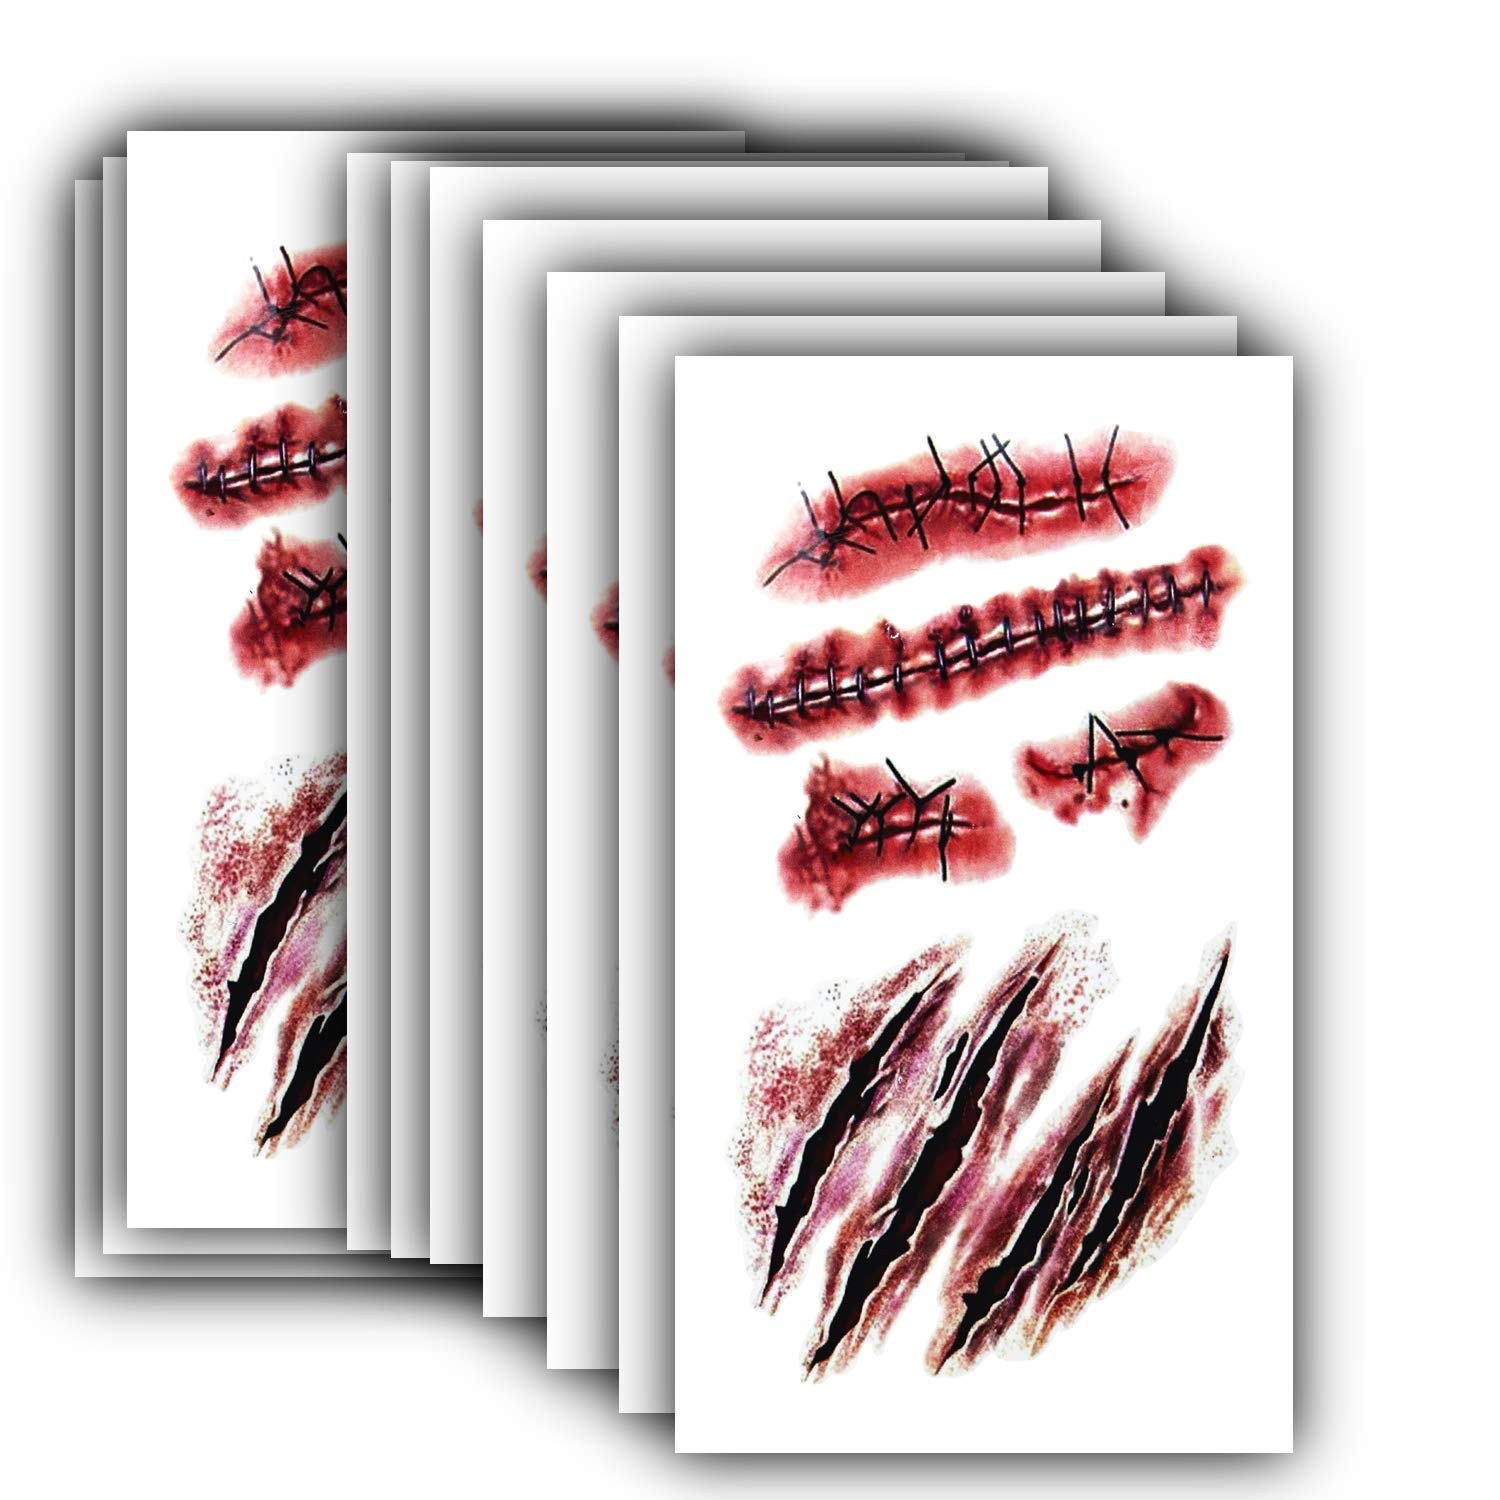 10pcs Horror Realistic Fake Bloody Wound Stitch Scar Scab Waterproof Temporary Tattoo Sticker Halloween Masquerade Prank Makeup Props (10)